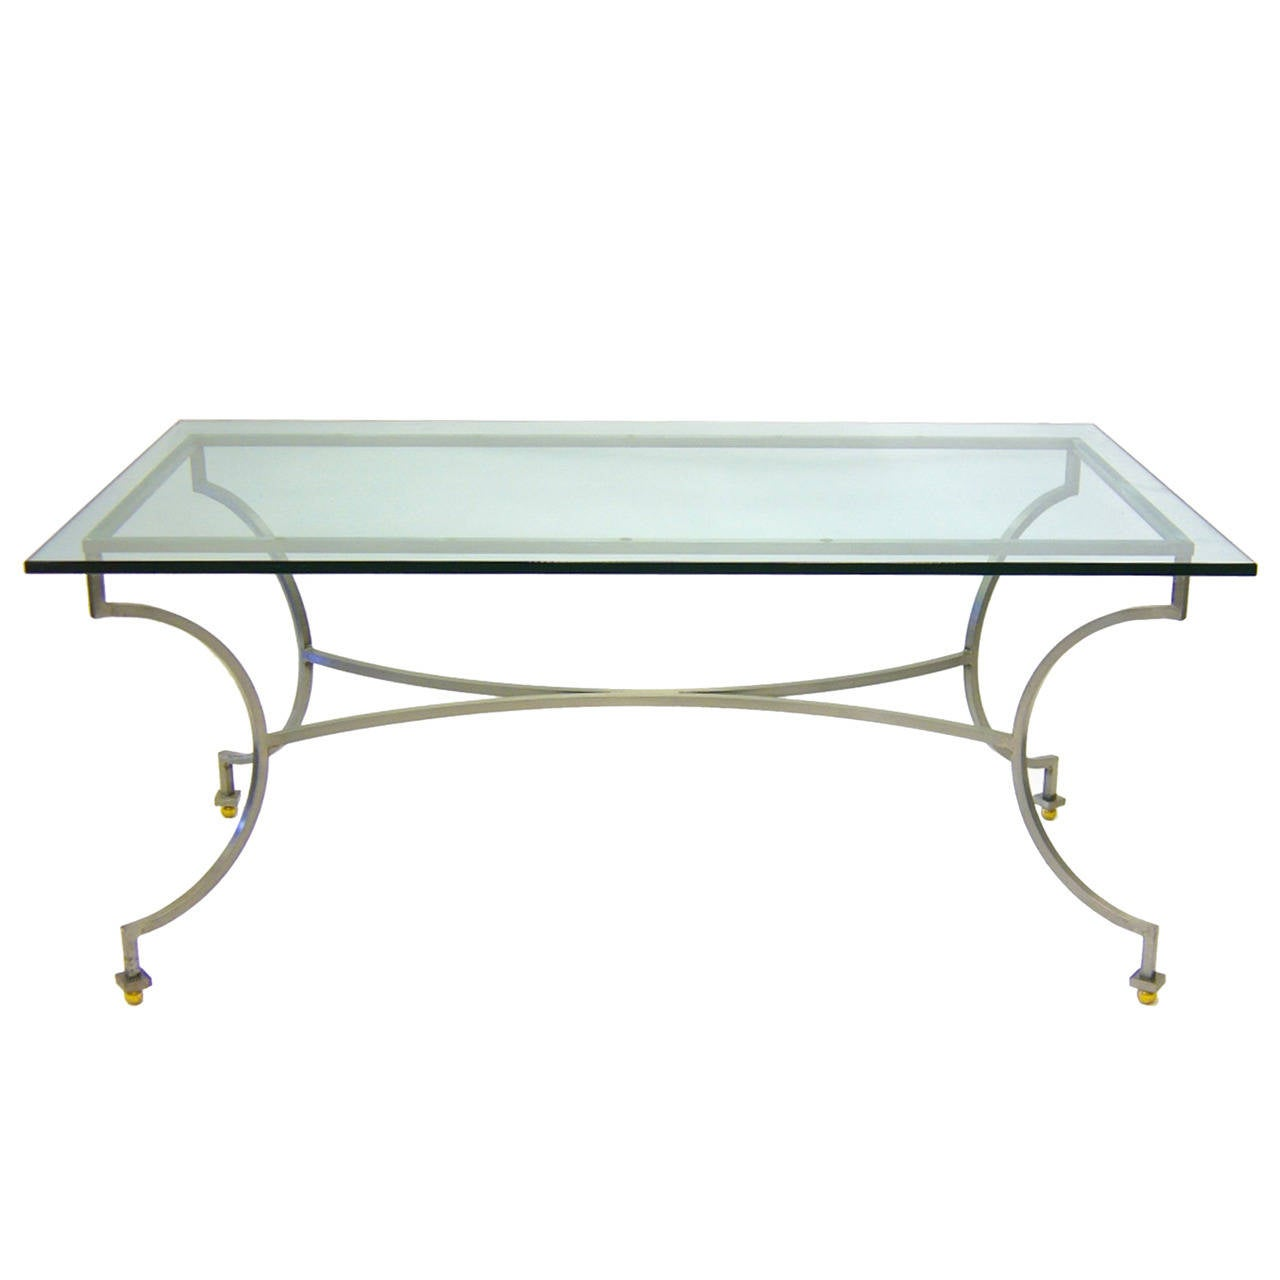 Steel and brass garden patio dining table with glass top for Outdoor dining table glass top